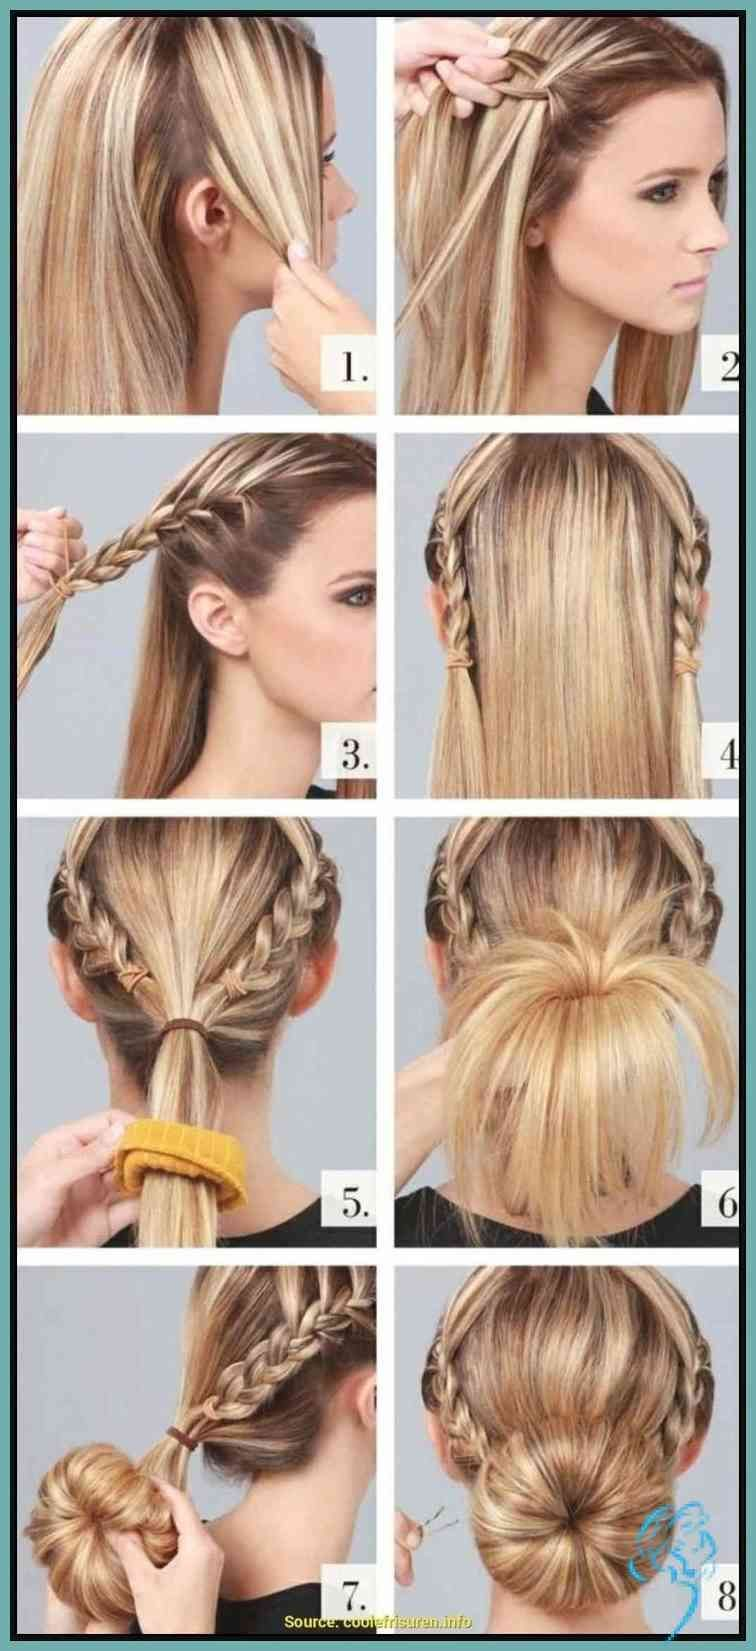 Pin on Hairstyles Lange Haare